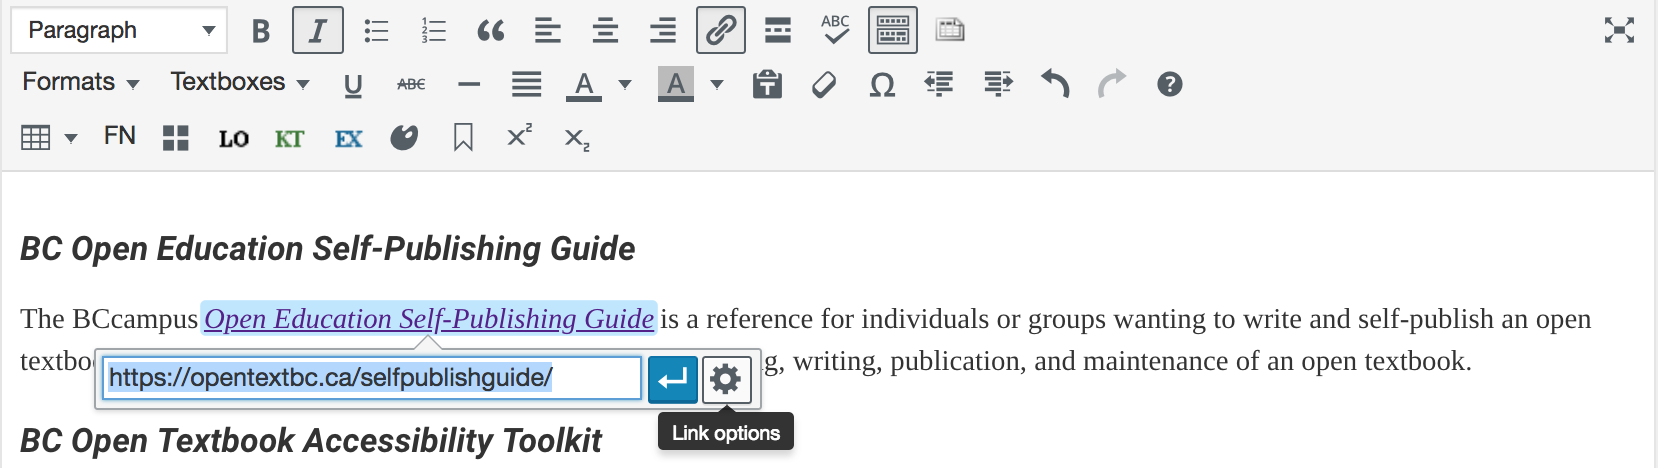 screenshot of editing dropdown for links - features gear icon to access link settings